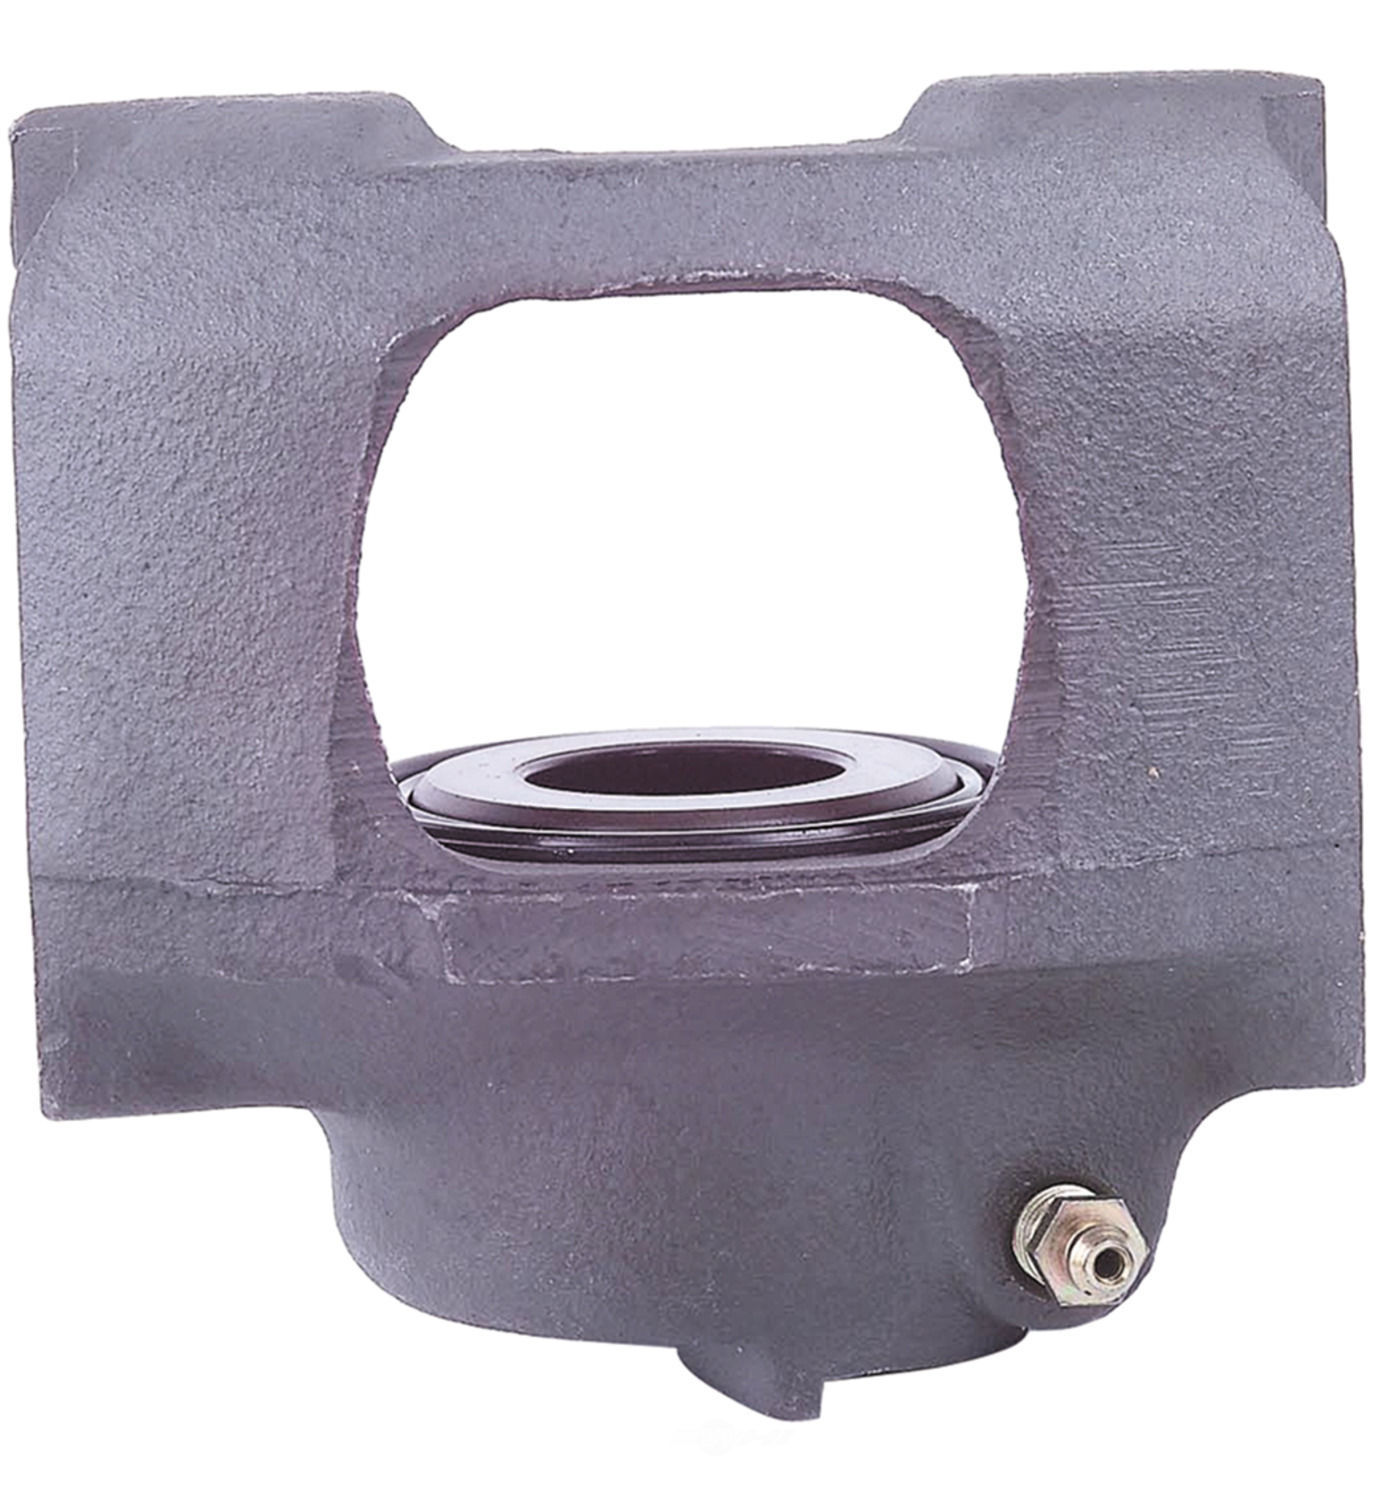 CARDONE/A-1 CARDONE - Reman Friction Choice Caliper (Front Left) - A1C 18-4197